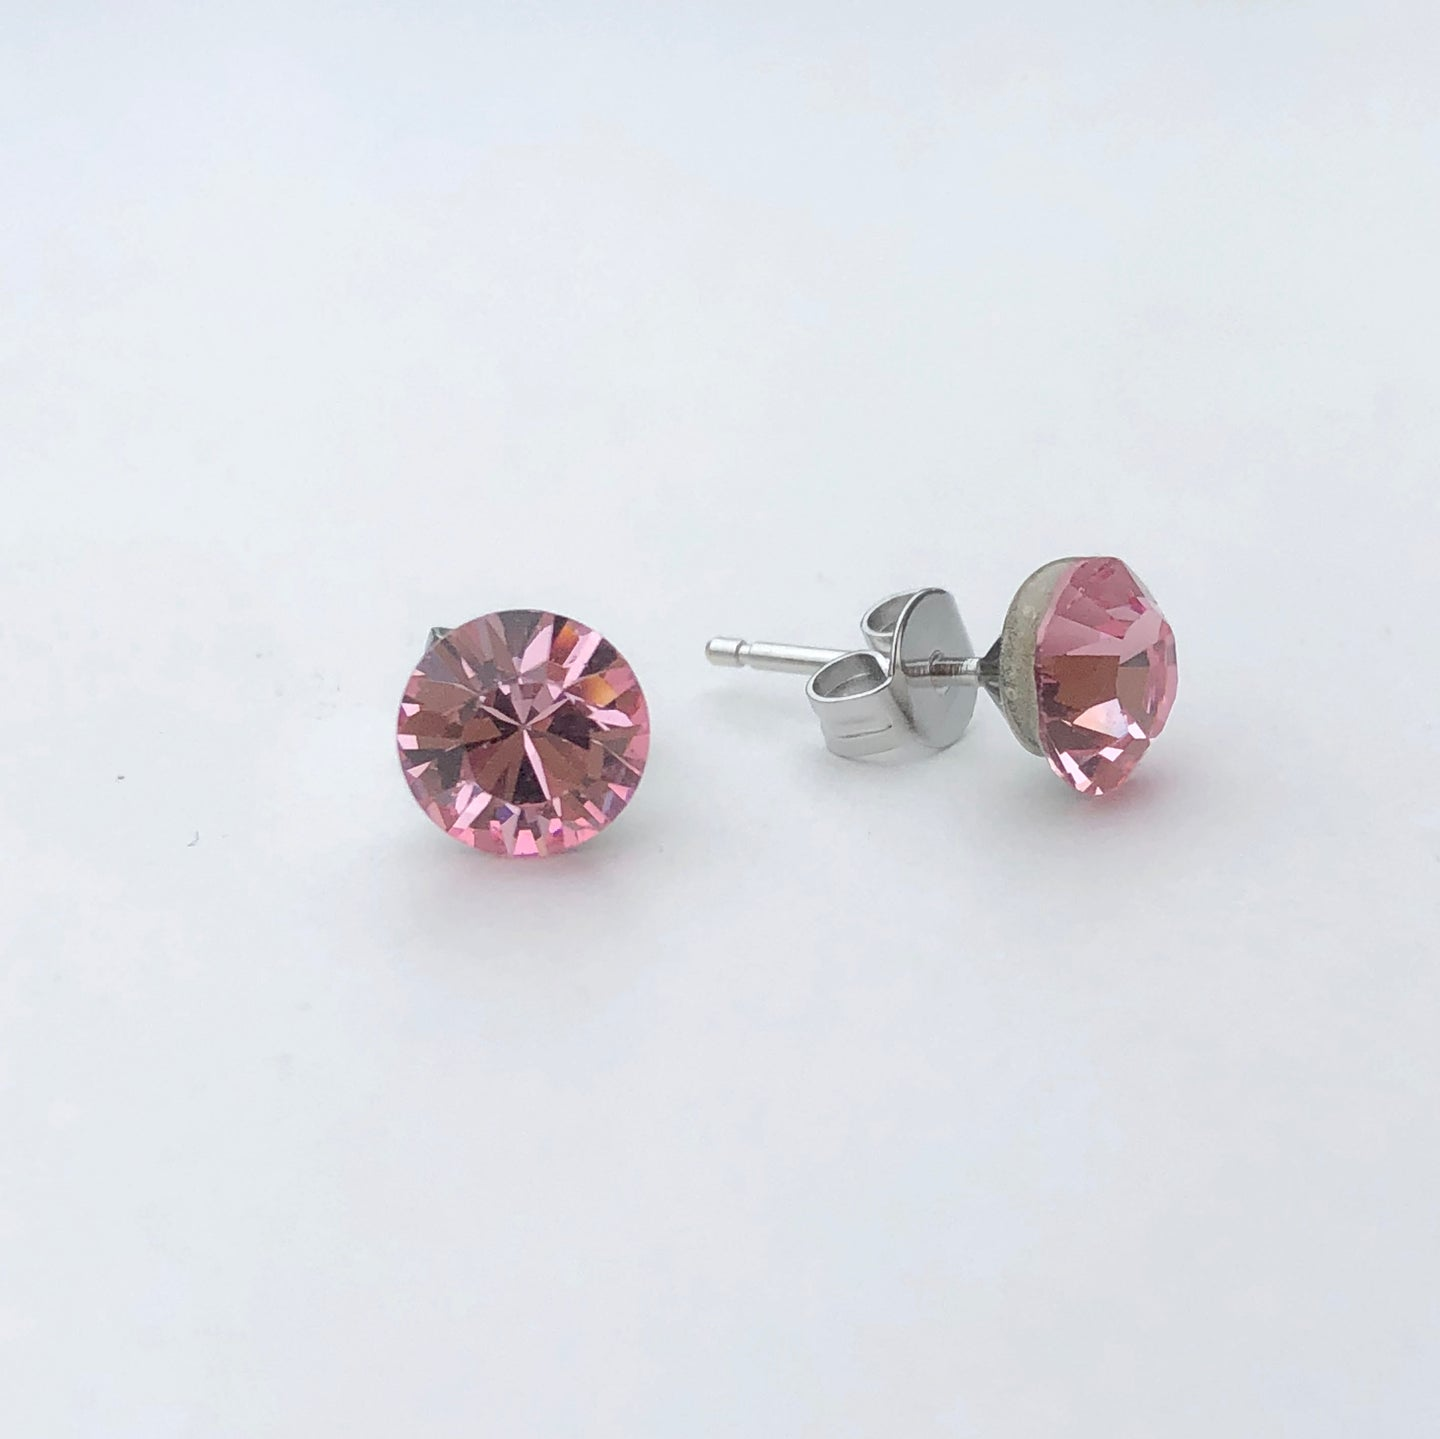 Light Rose Pink Swarovski Crystal Stud Earrings